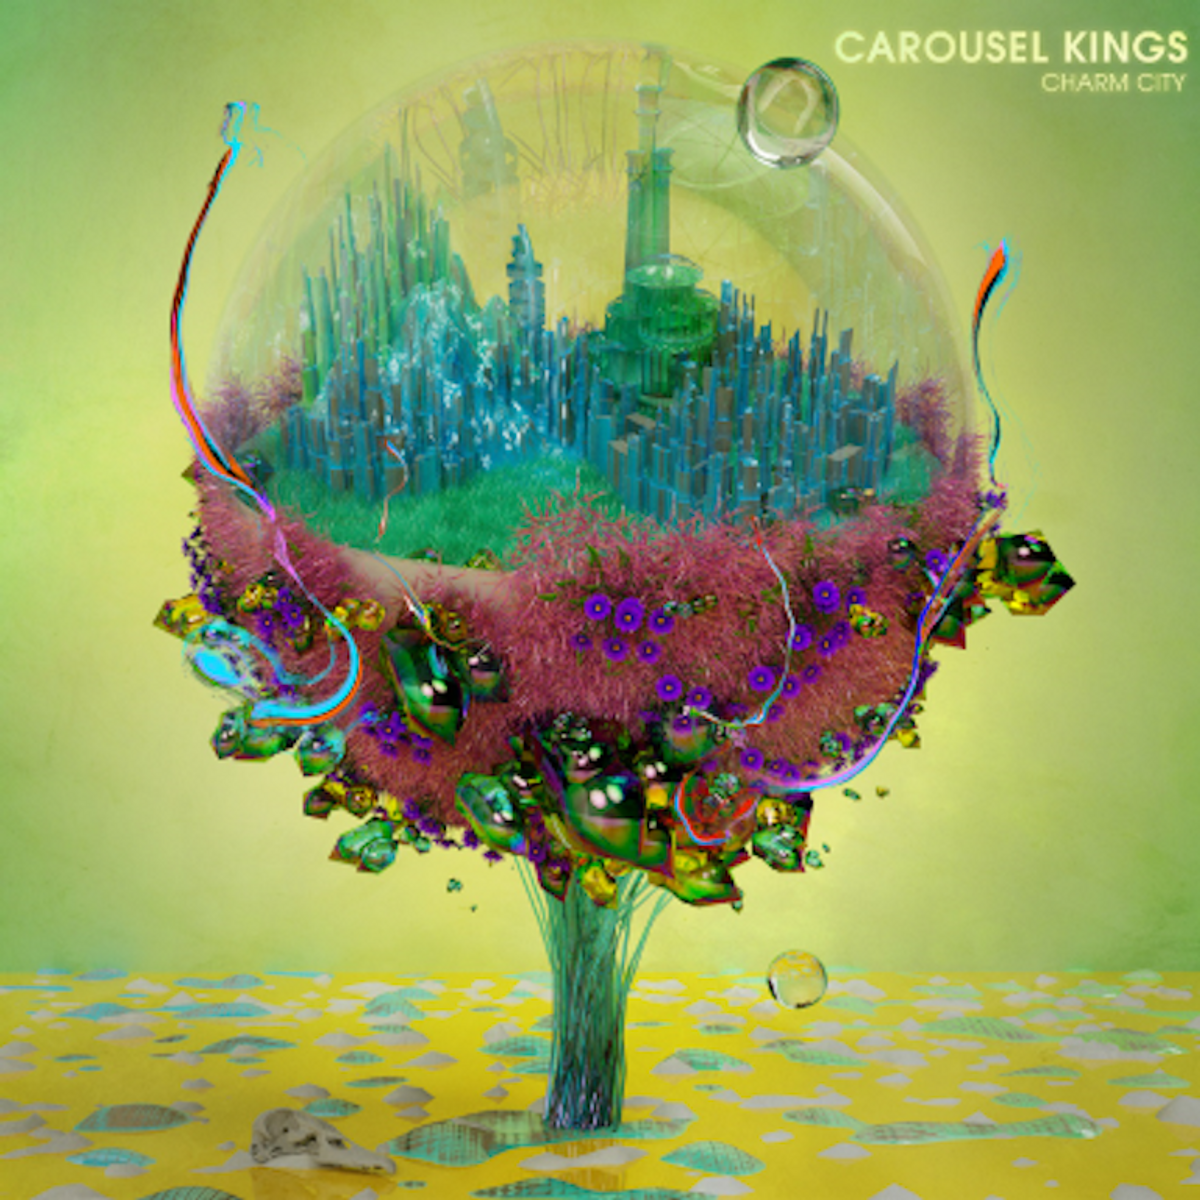 Introducing Carousel Kings, Your New Favorite Pop Punk Band